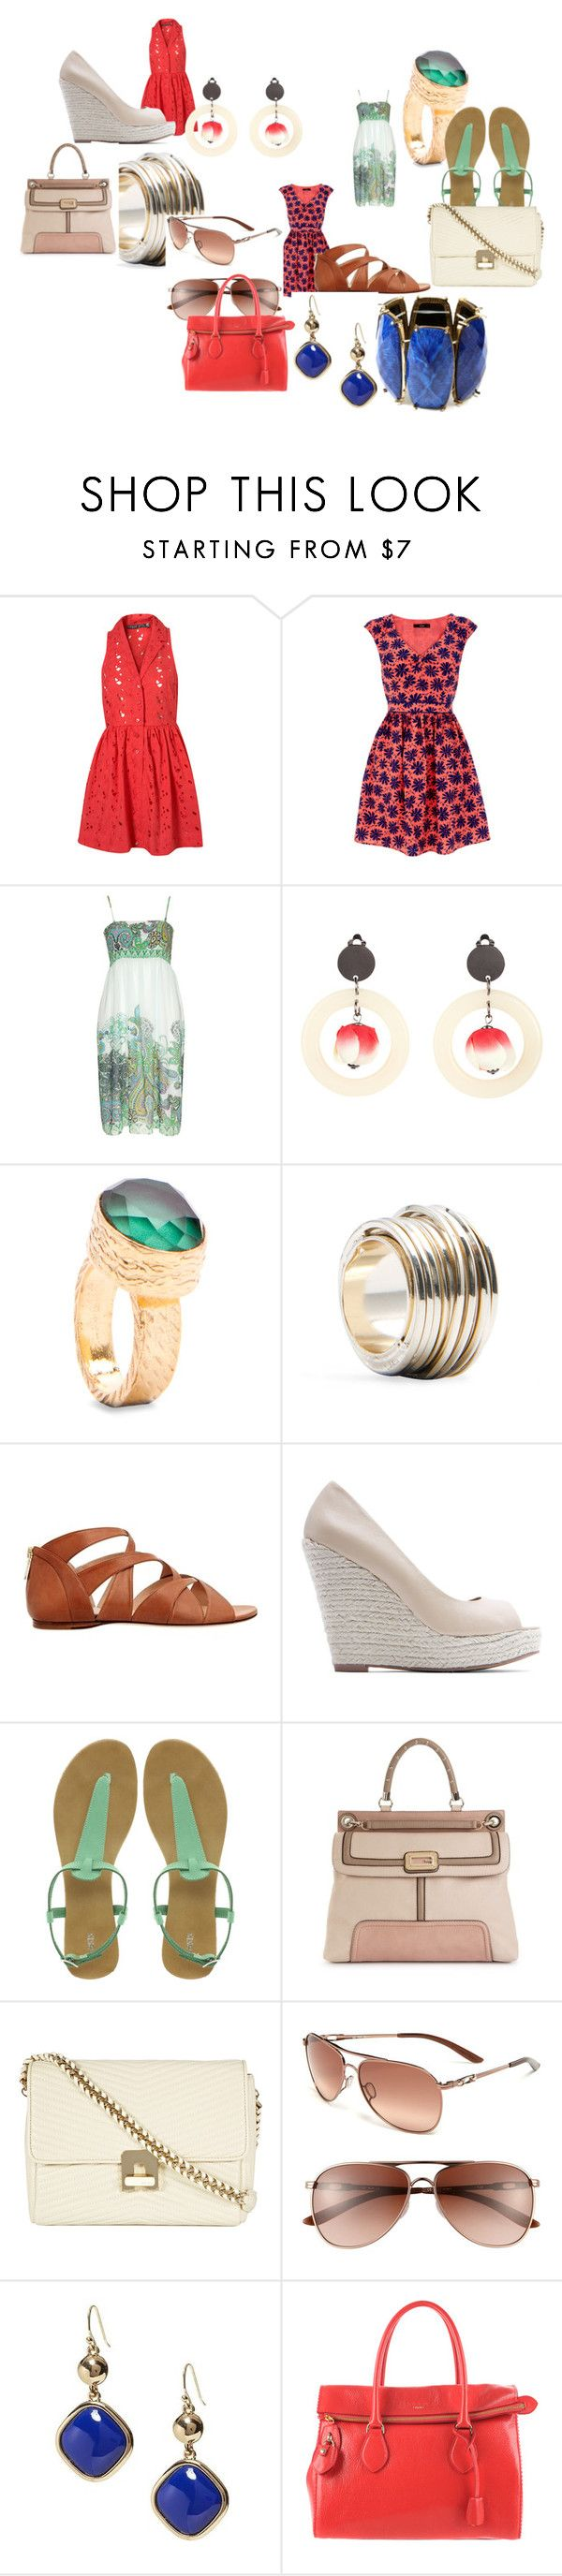 """Going through summer"" by atwoz ❤ liked on Polyvore featuring Topshop, Oasis, Bandolera, H&M, MANGO, Alejandro Ingelmo, GUESS, Reiss, Oakley and Banana Republic"